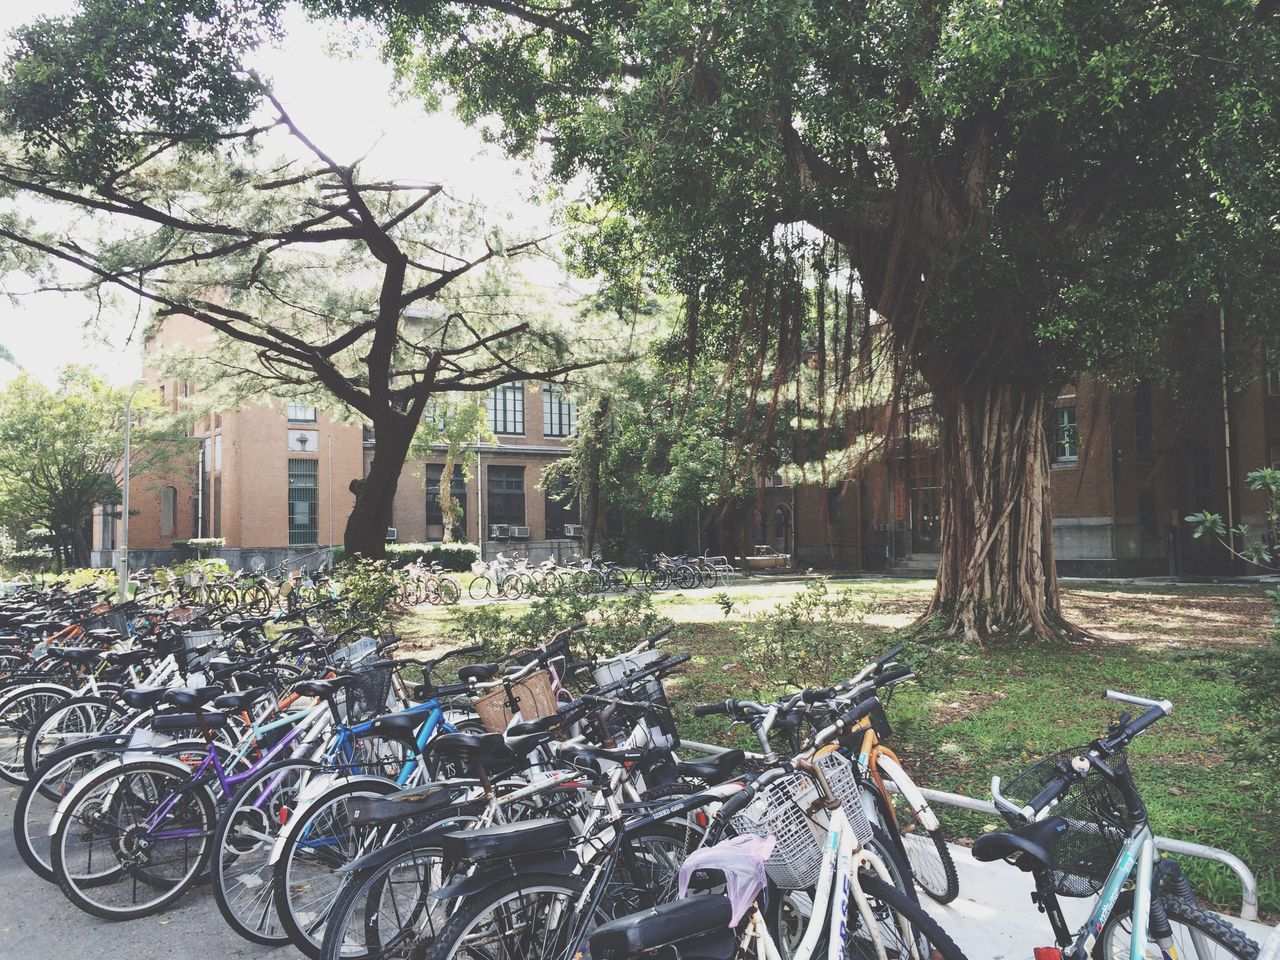 國立臺灣大學 National Taiwan University  Taiwan Taipei Taipei,Taiwan trees, bicycles, walk